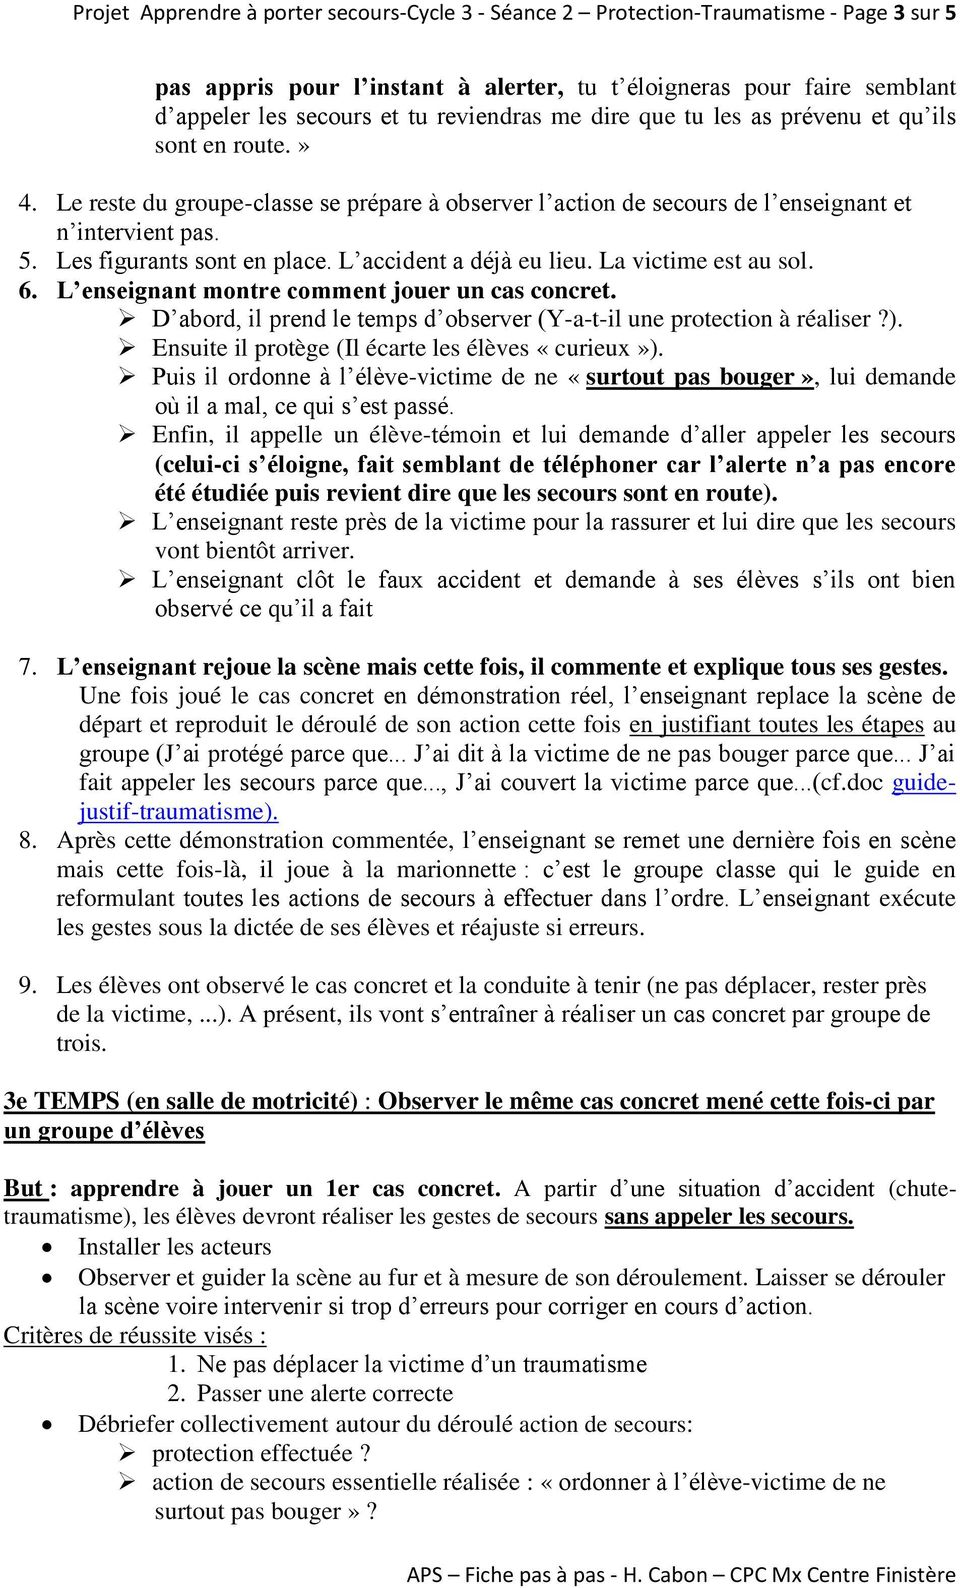 Projet apprendre porter secours cycle 3 s ance 2 protection traumatisme page 1 sur 5 pdf - Apprendre a porter secours cycle 3 ...